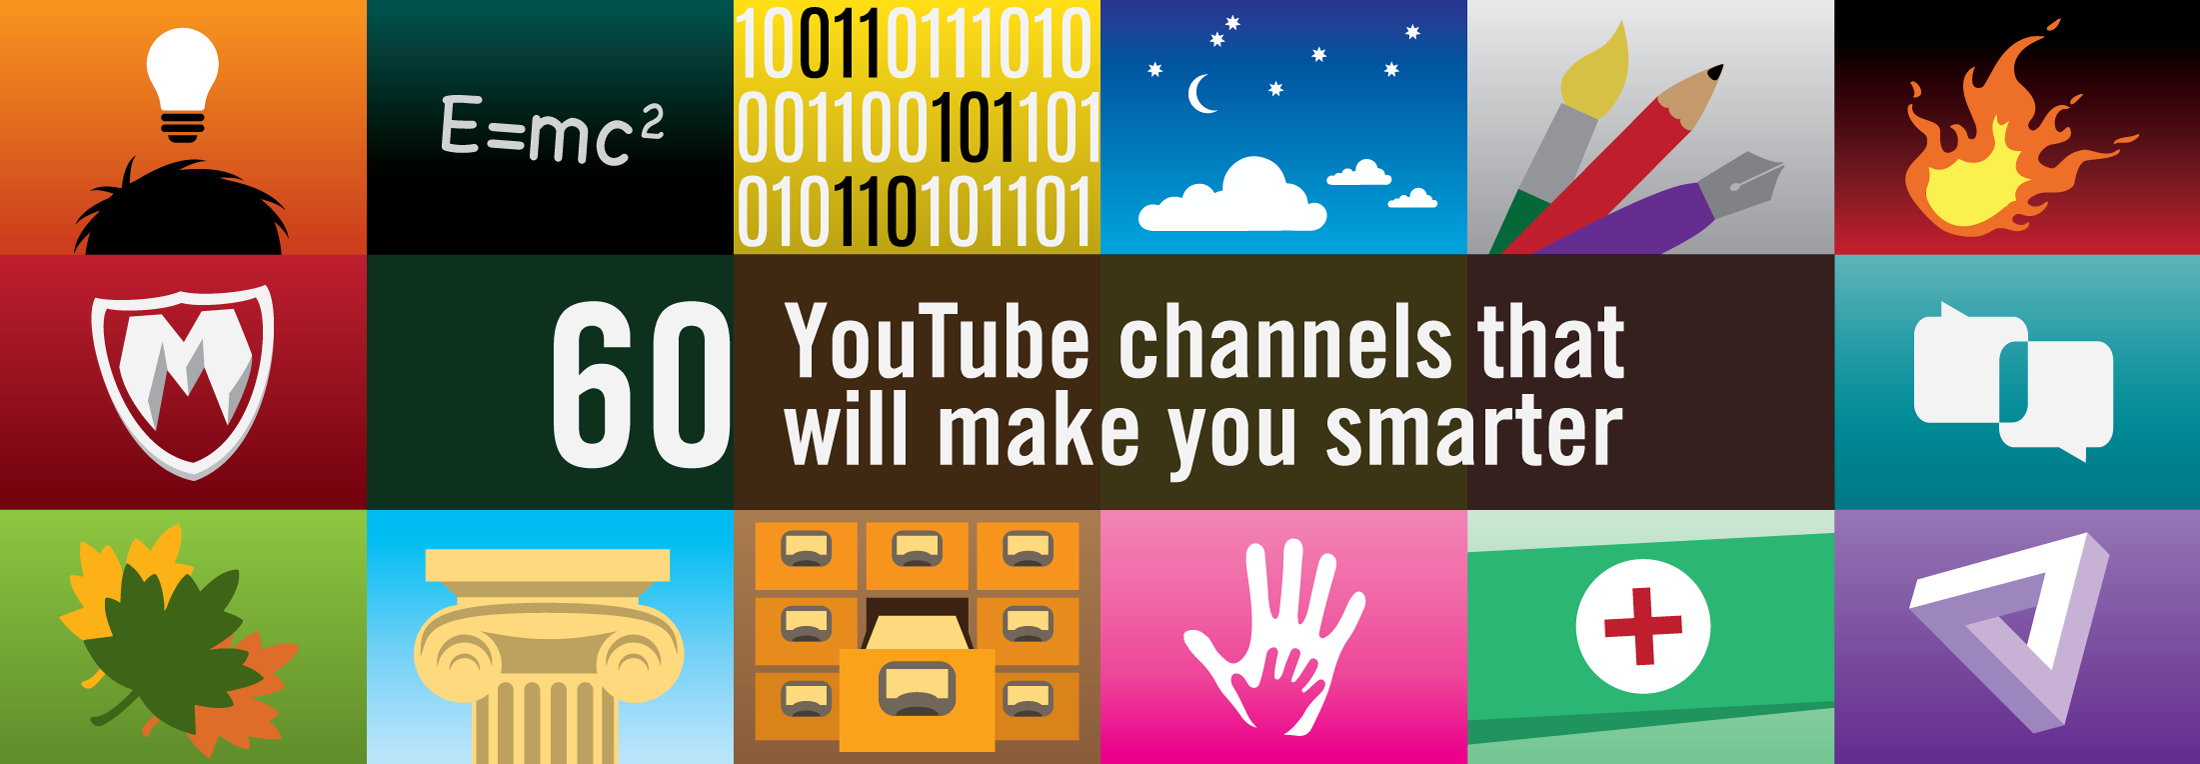 60 YouTube channels that will make you smarter - The Graph